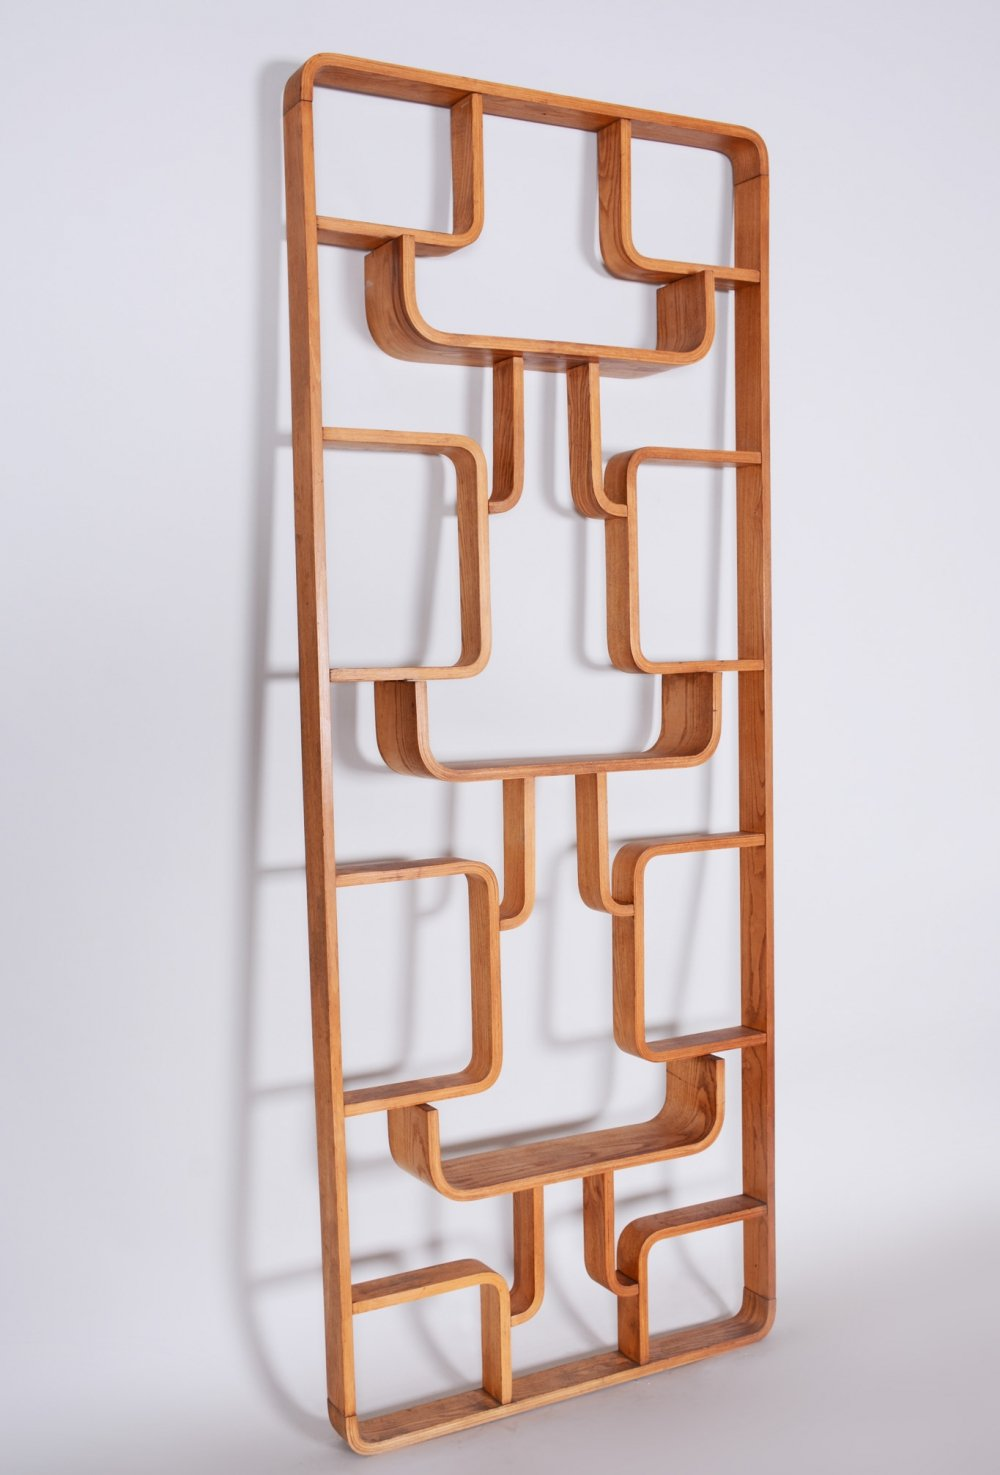 Ash Room Divider Wall Unit by Ludvik Volak for Drevopodnik Holesov, 1960s